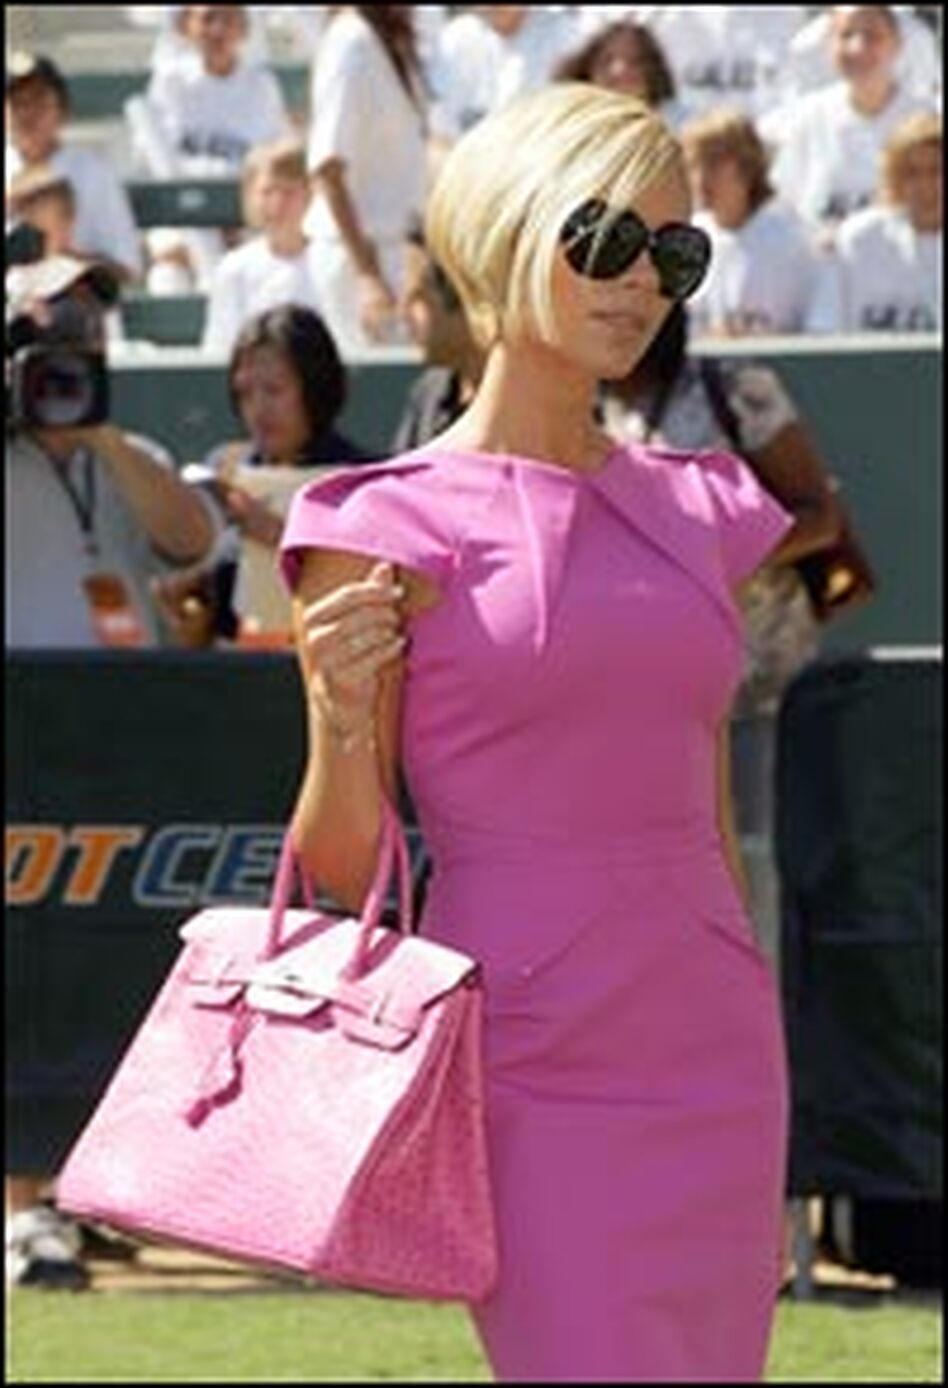 Victoria Beckham keeps the paparazzi busy at the Home Depot Center, July 13, 2007. This week, the former and future Spice Girl introduced herself to America in a show on NBC.